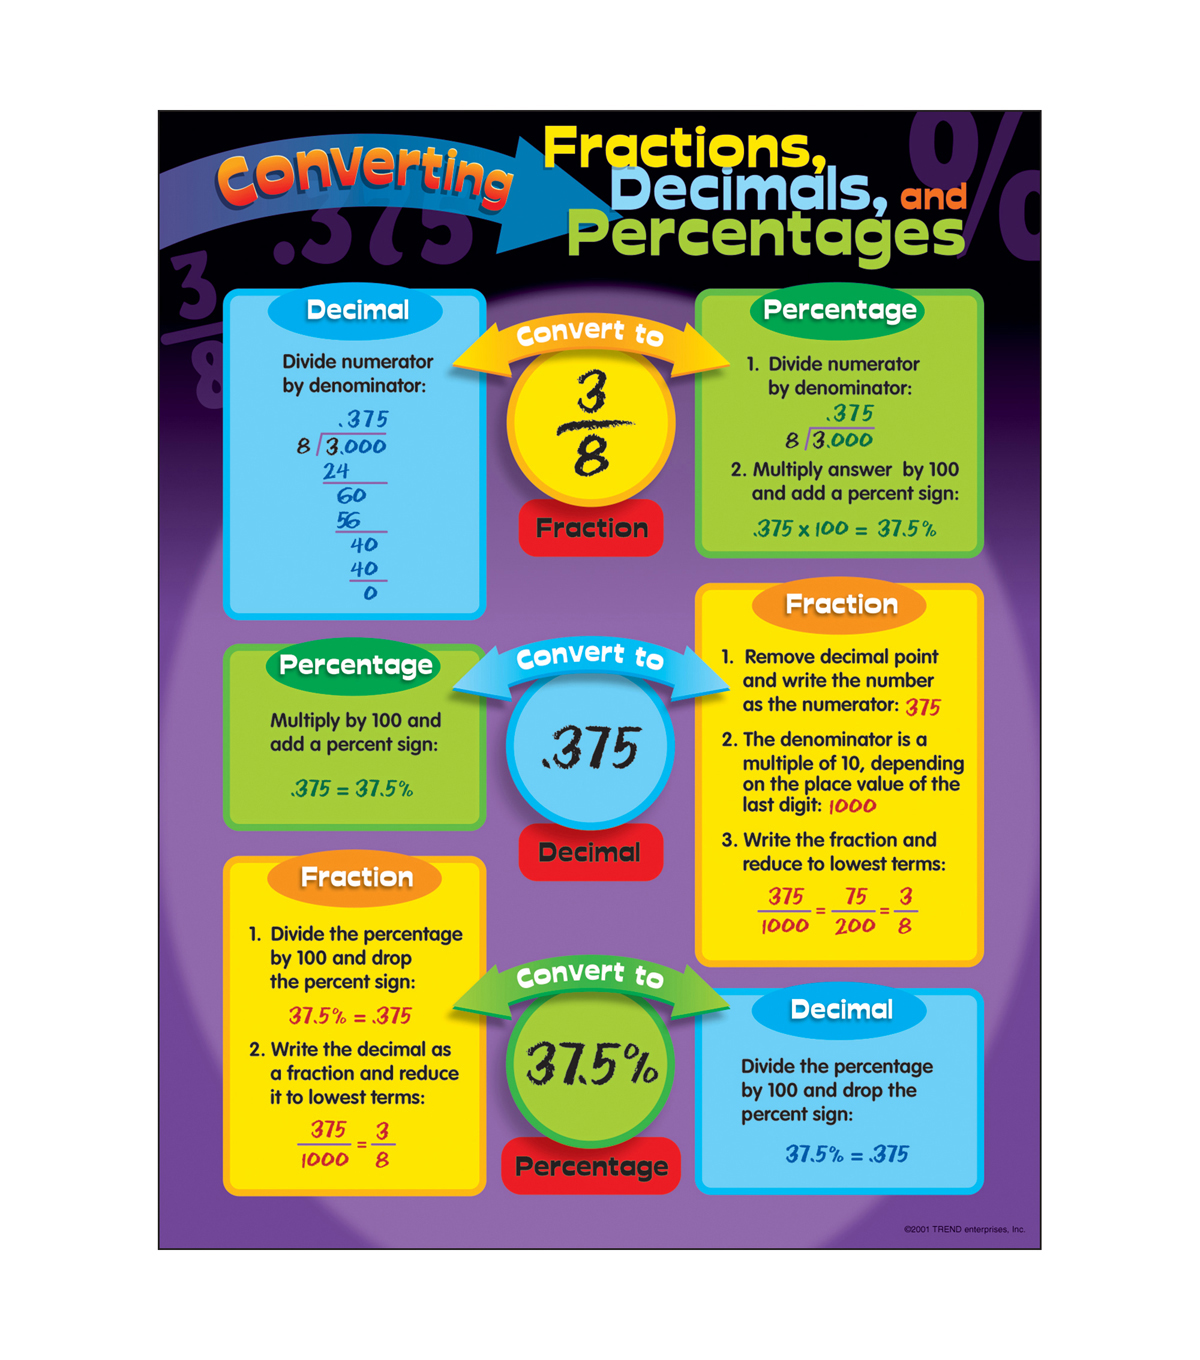 Converting Fractions Decimals And Percentages Learning